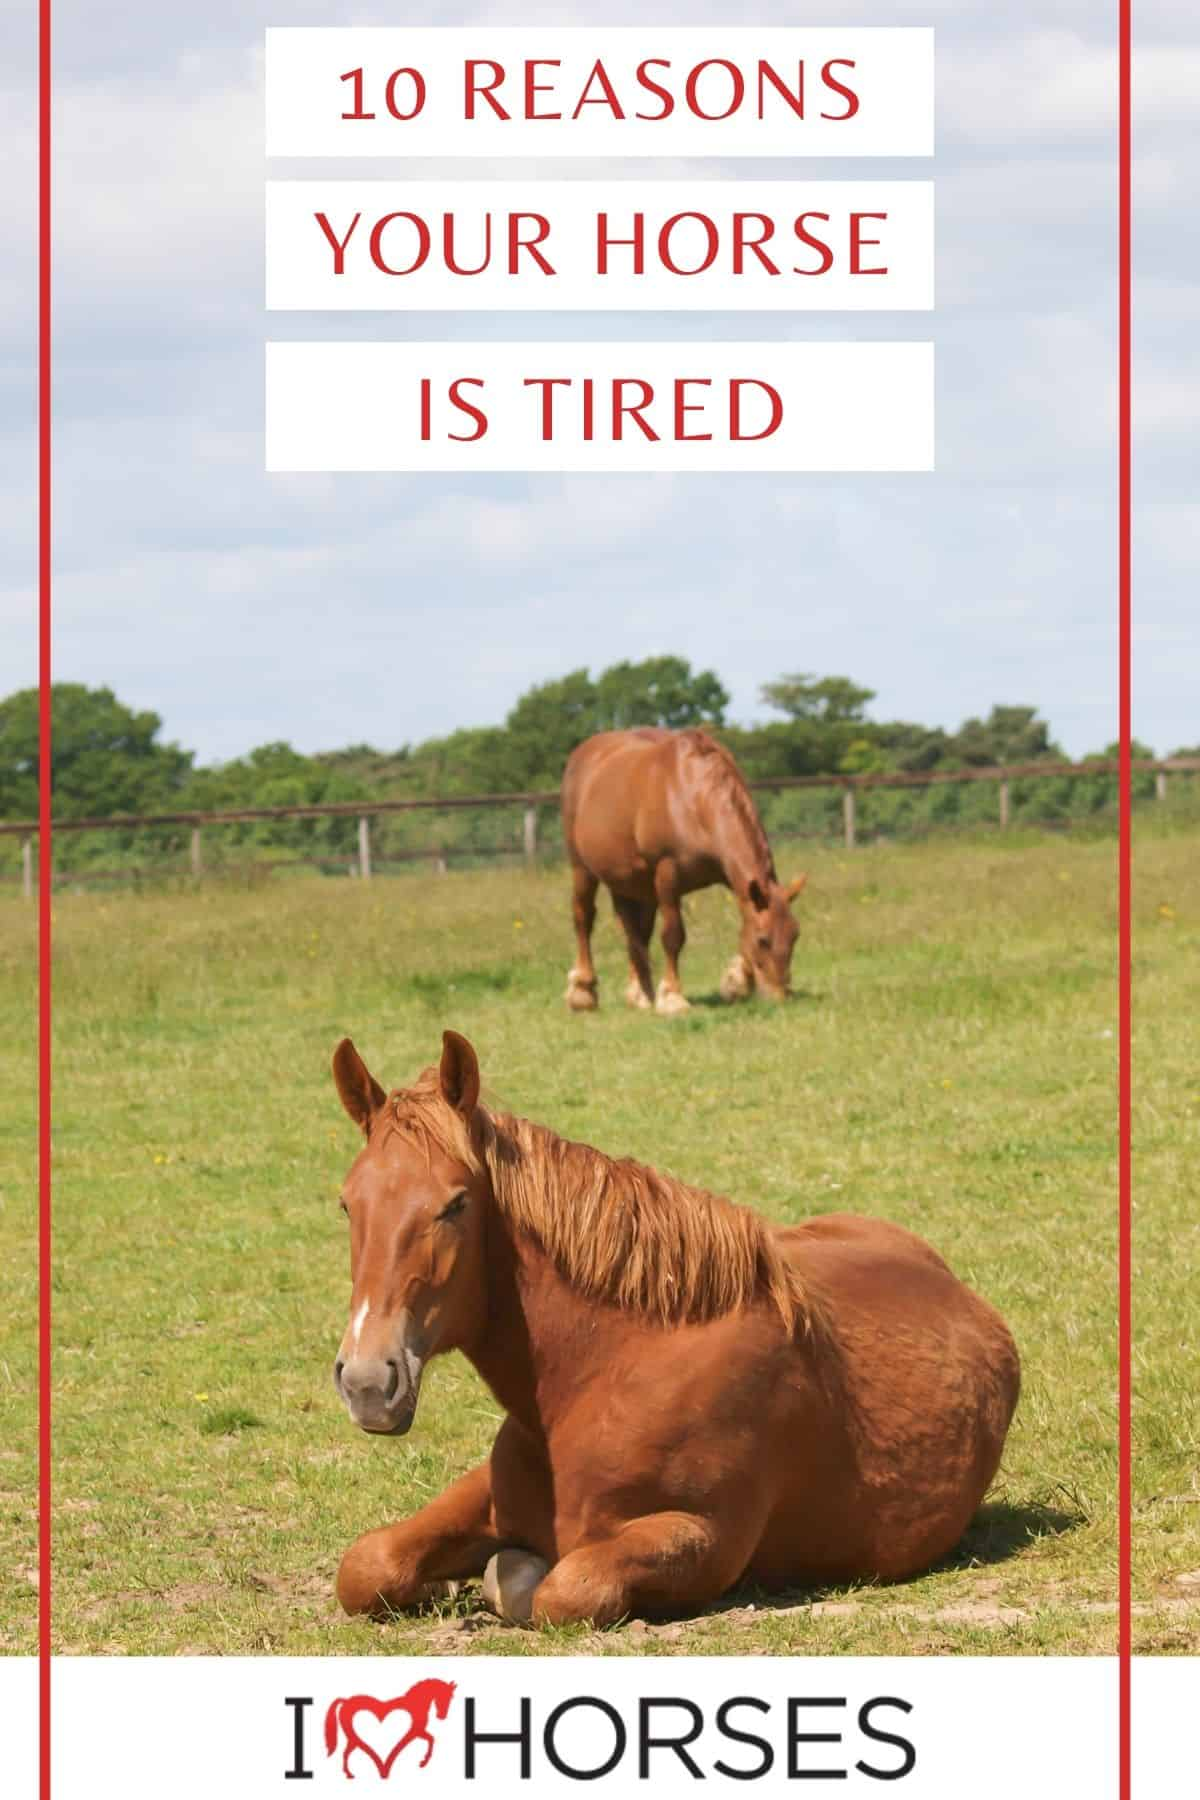 Pinterest image that says 10 reasons your horse is tired in red over white banners with horse sitting in foreground